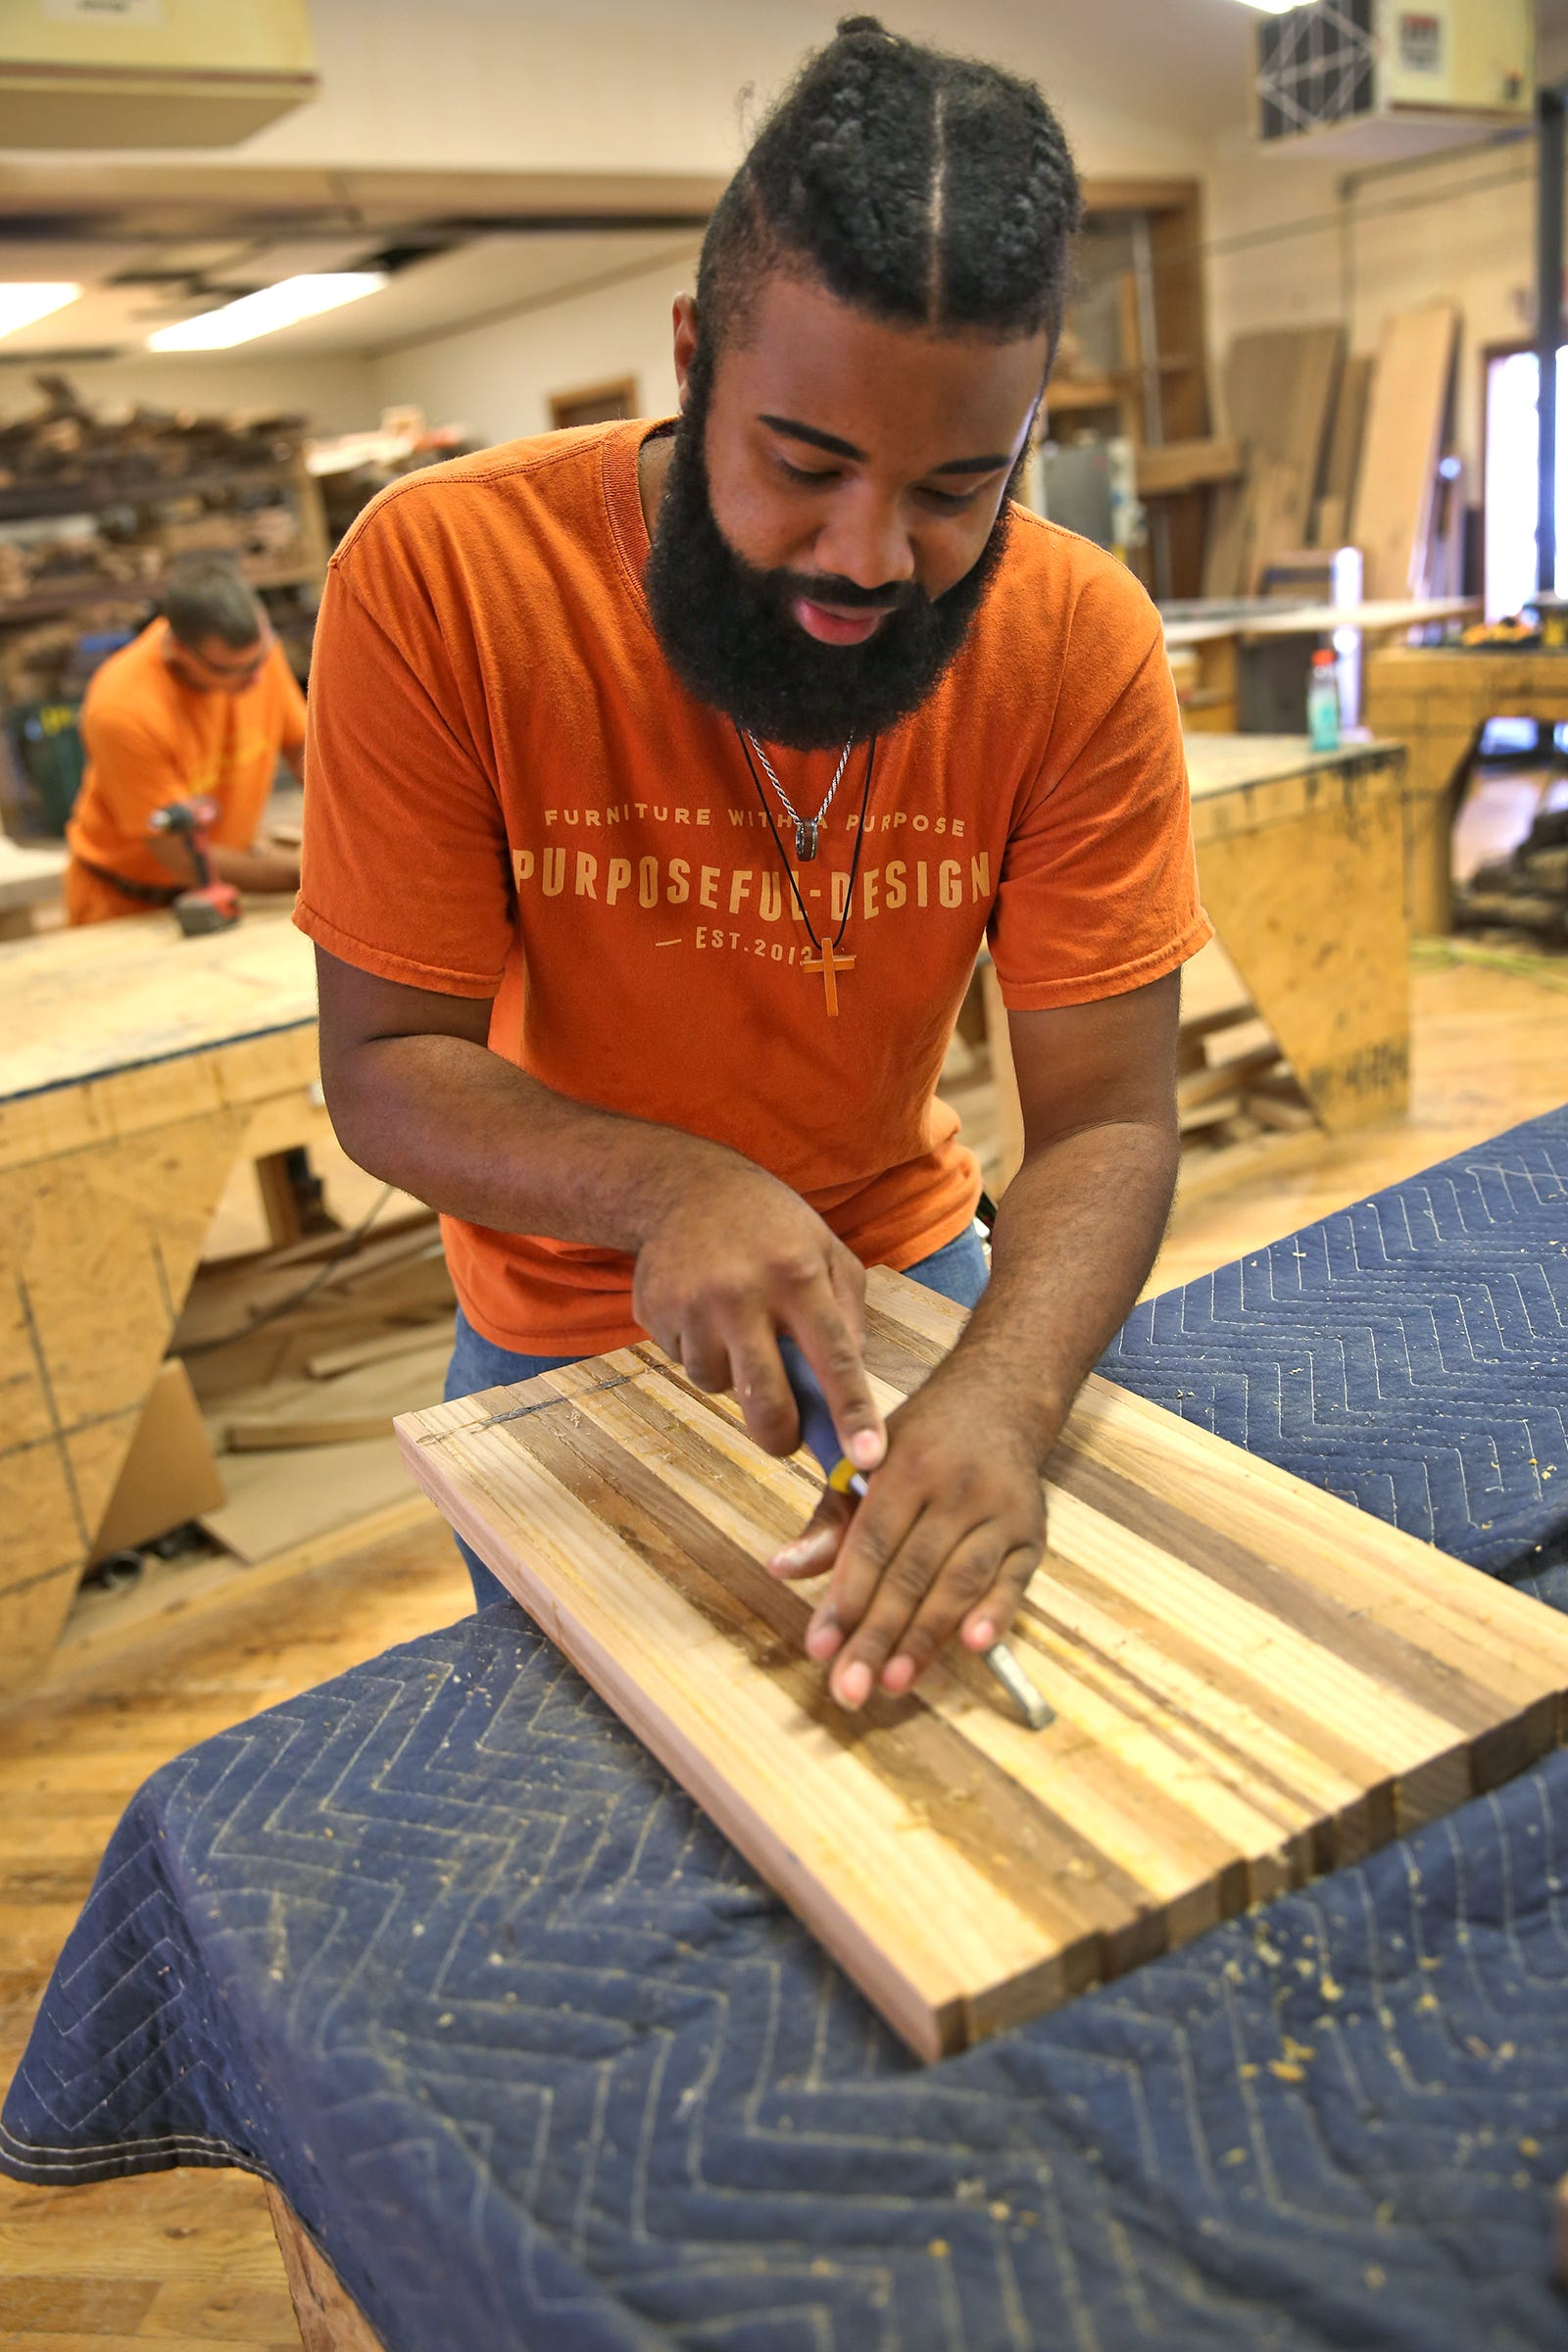 Faith U0026 Action Project Awards $125,000 In Grants To Poverty Fighting  Programs, Including A Tiny Wood Shop On The East Side